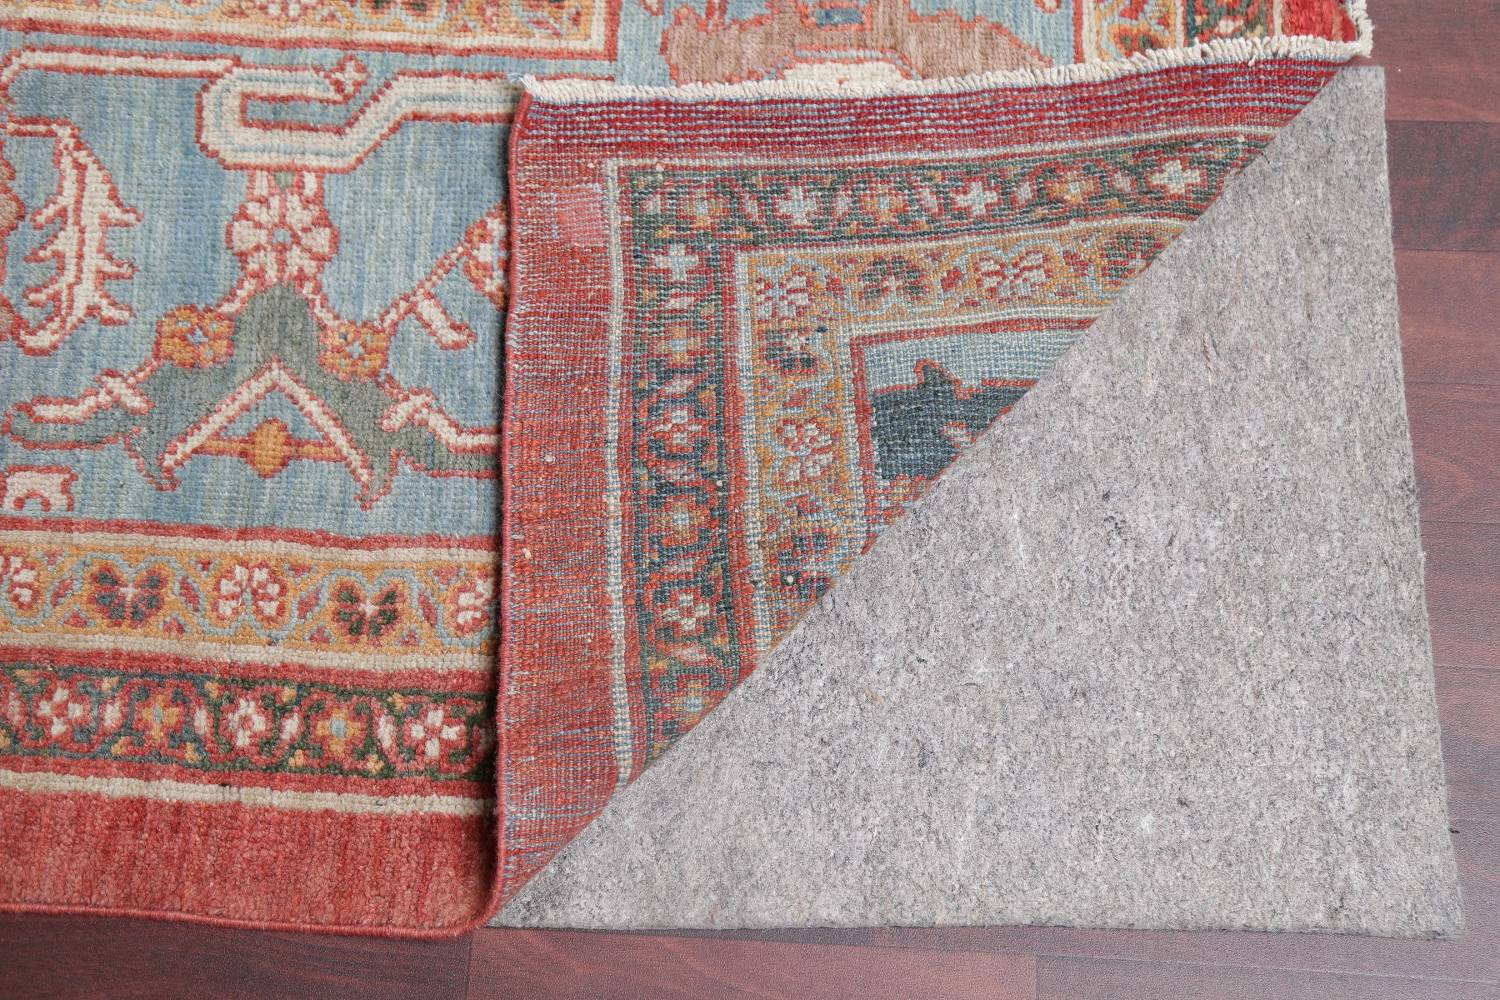 Palace Size Pre-1900 Antique Sultanabad Persian Rug 14x24 image 7